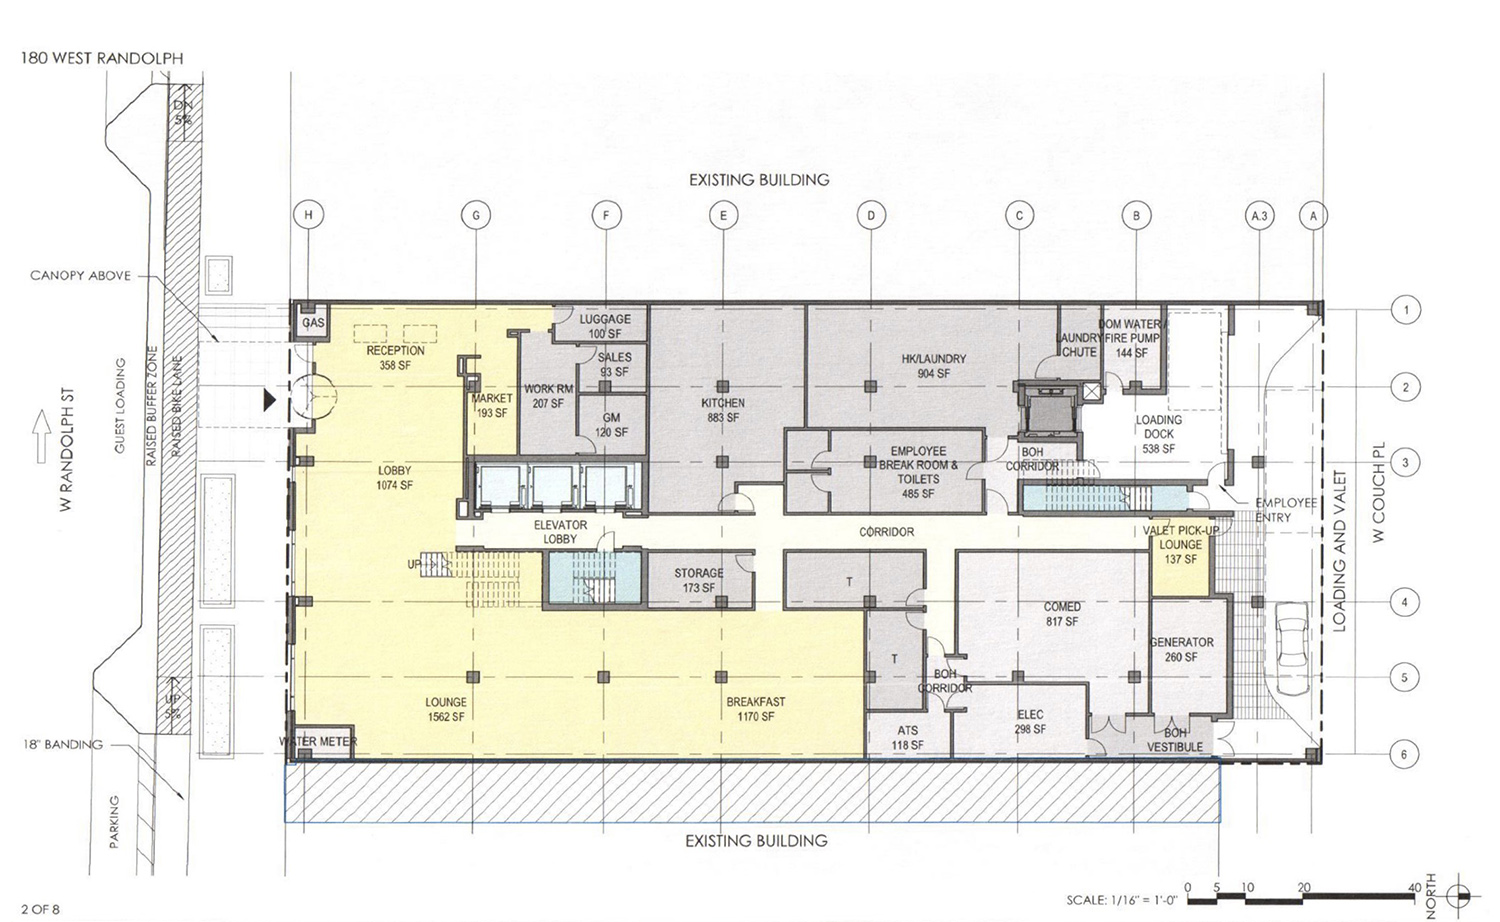 Ground Floor Plan for 180 W Randolph Street. Drawing by DLR Group